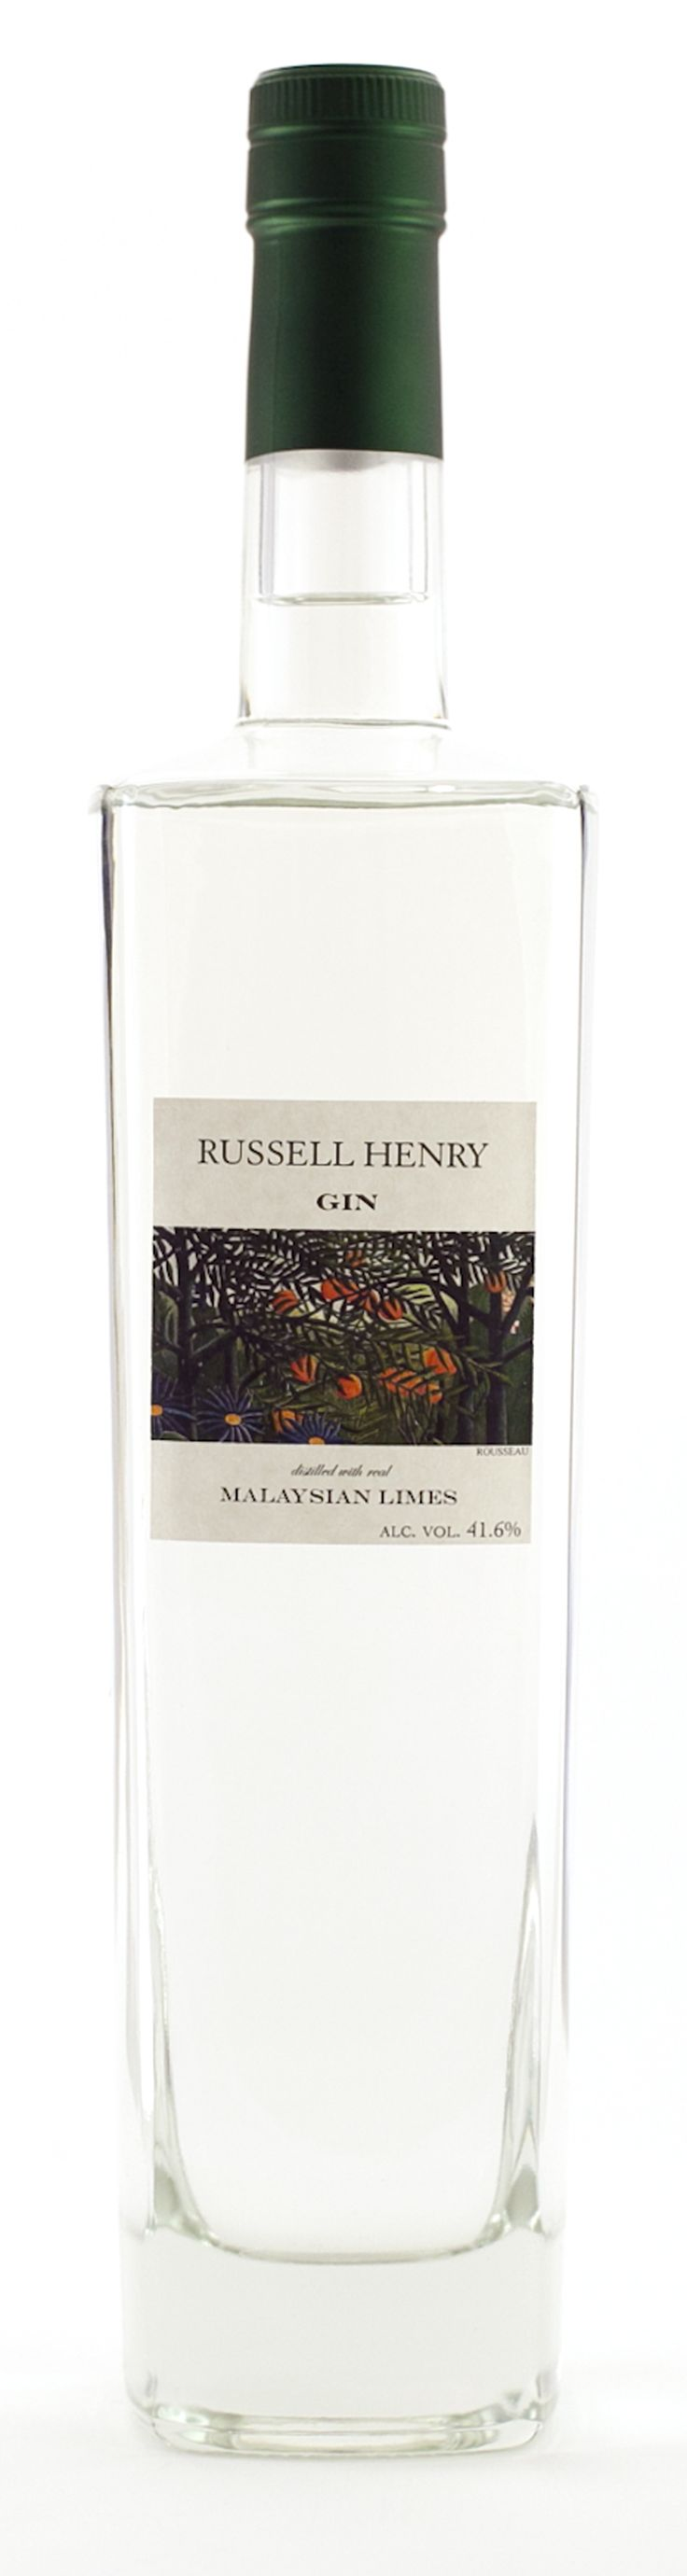 RUSSELL HENRY MALAYSIAN LIME GIN, California